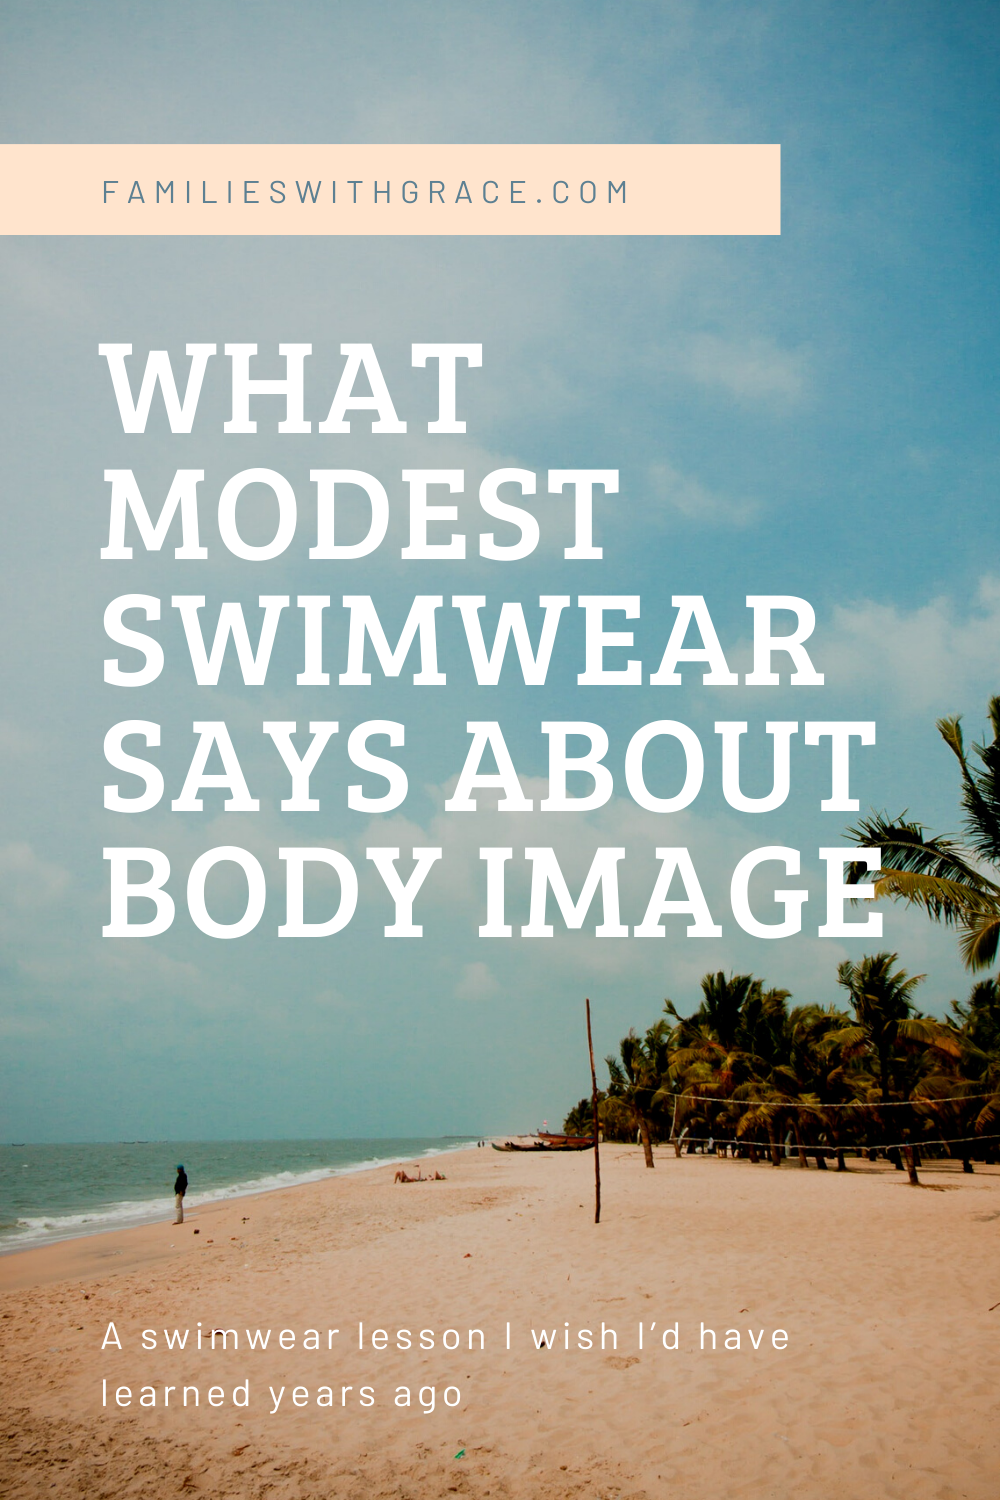 What modest swimwear says about my body image